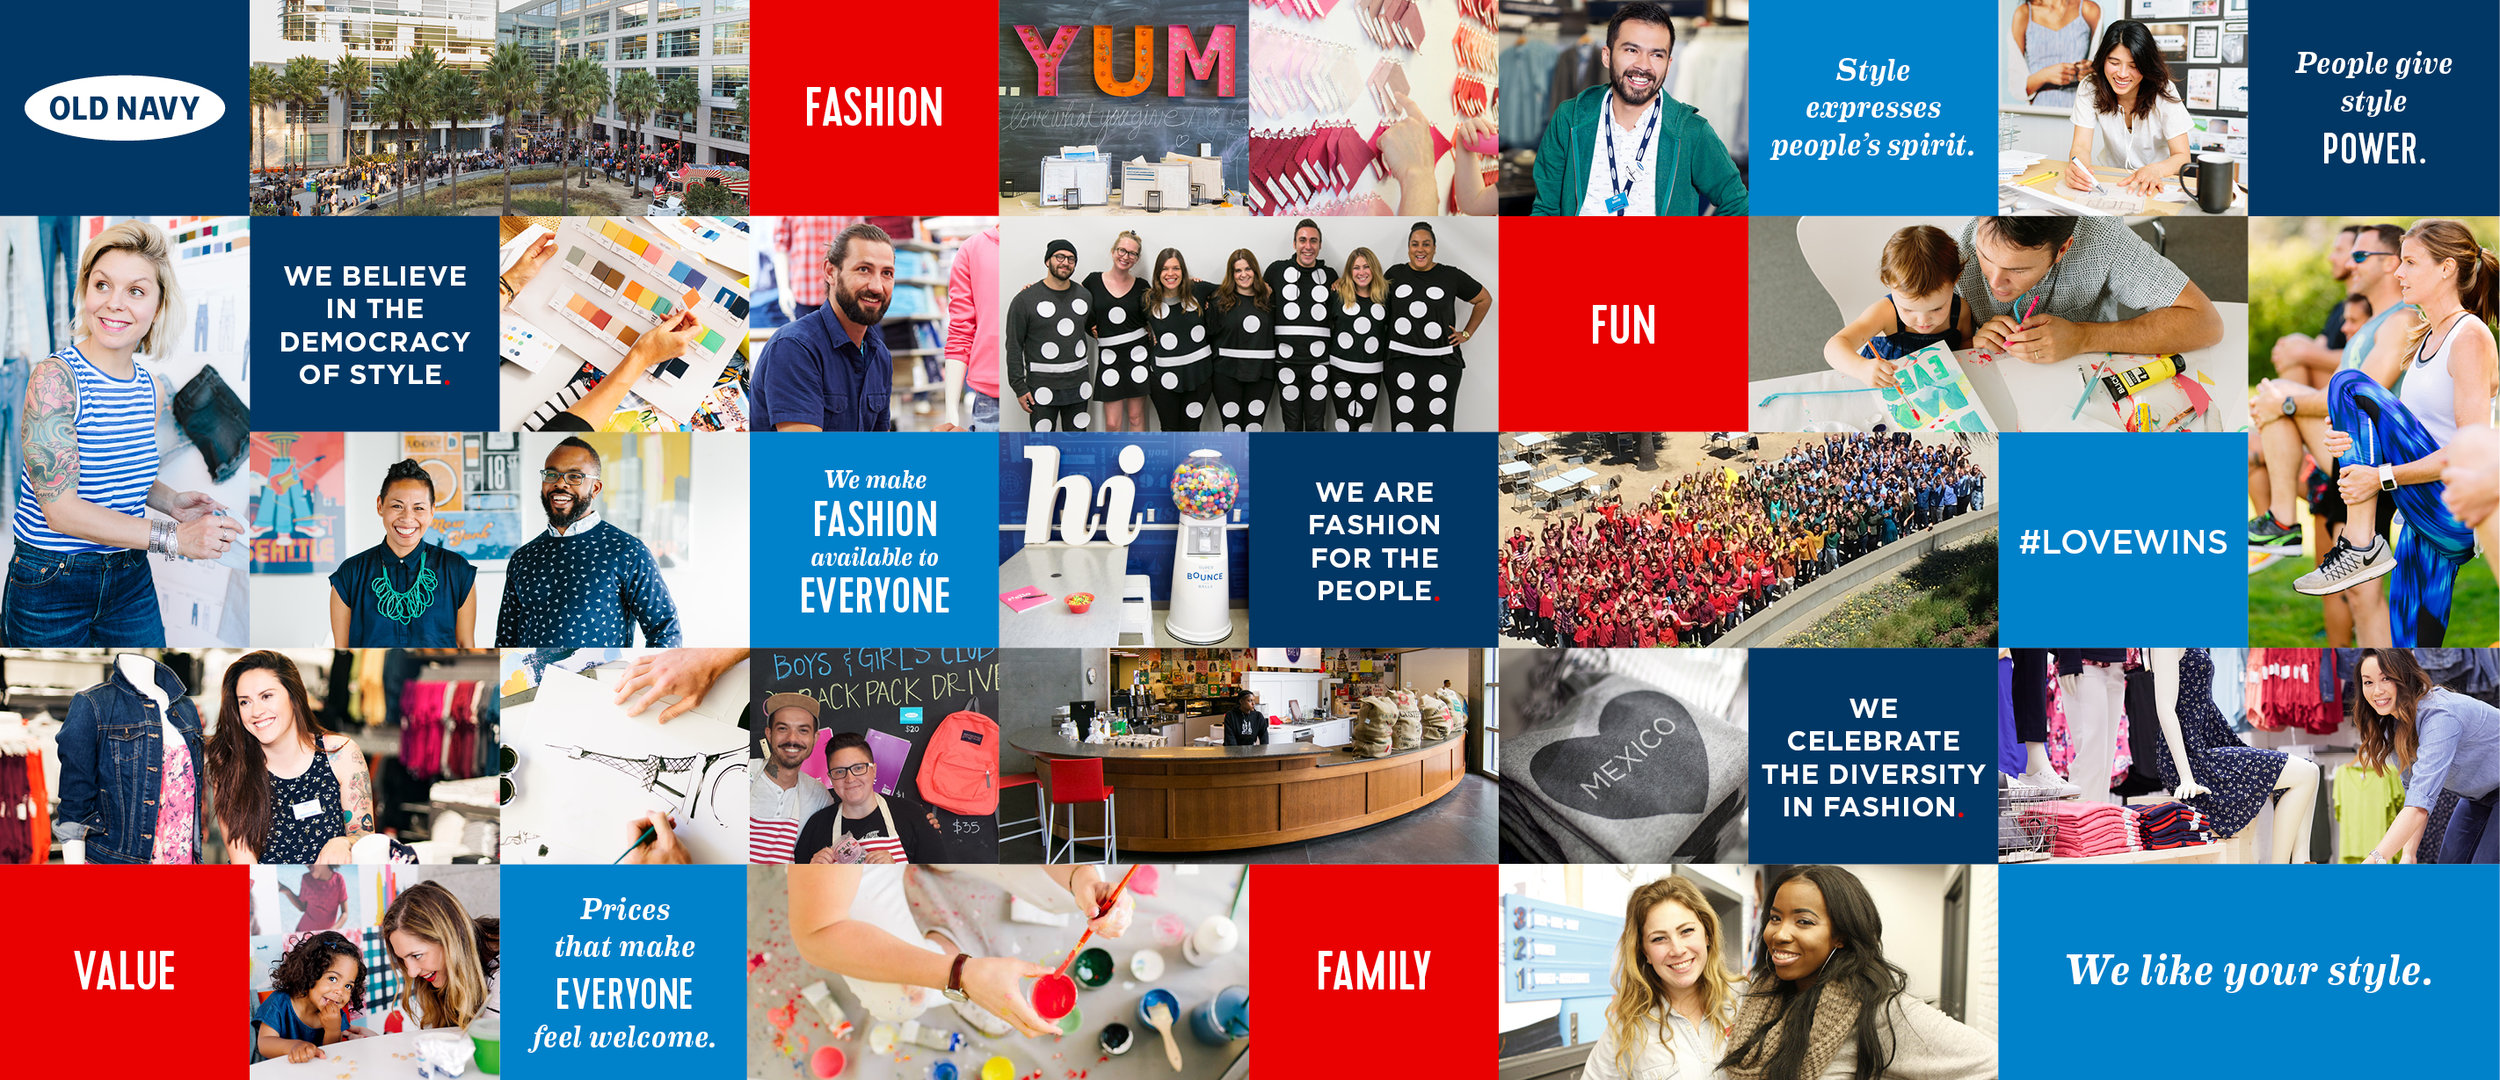 Create + execute visual storytelling strategy that brings Old Navy to life through external and internal global channels. Develop creative campaigns, design concepts and digital communication platforms that meet business objectives + advance brand strategy. Create, develop and oversee the execution of social media + digital initiatives including development of campaigns, content creation and driving engagement across multiple channels including Web, social and mobile.